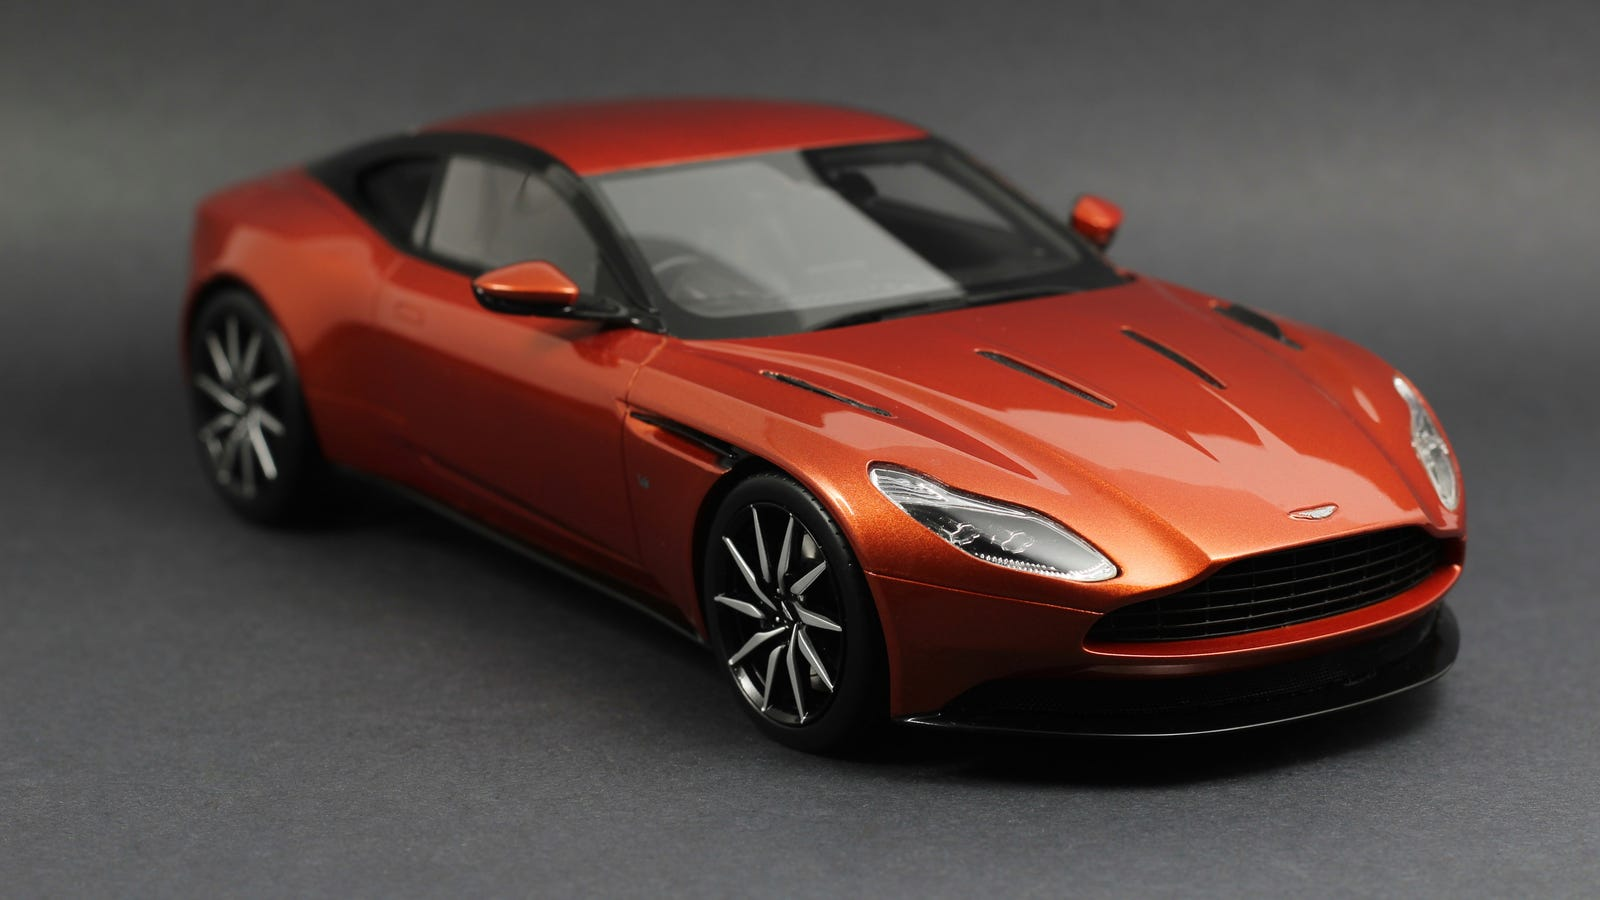 aston martin db11 in 1/18 scale from topspeed